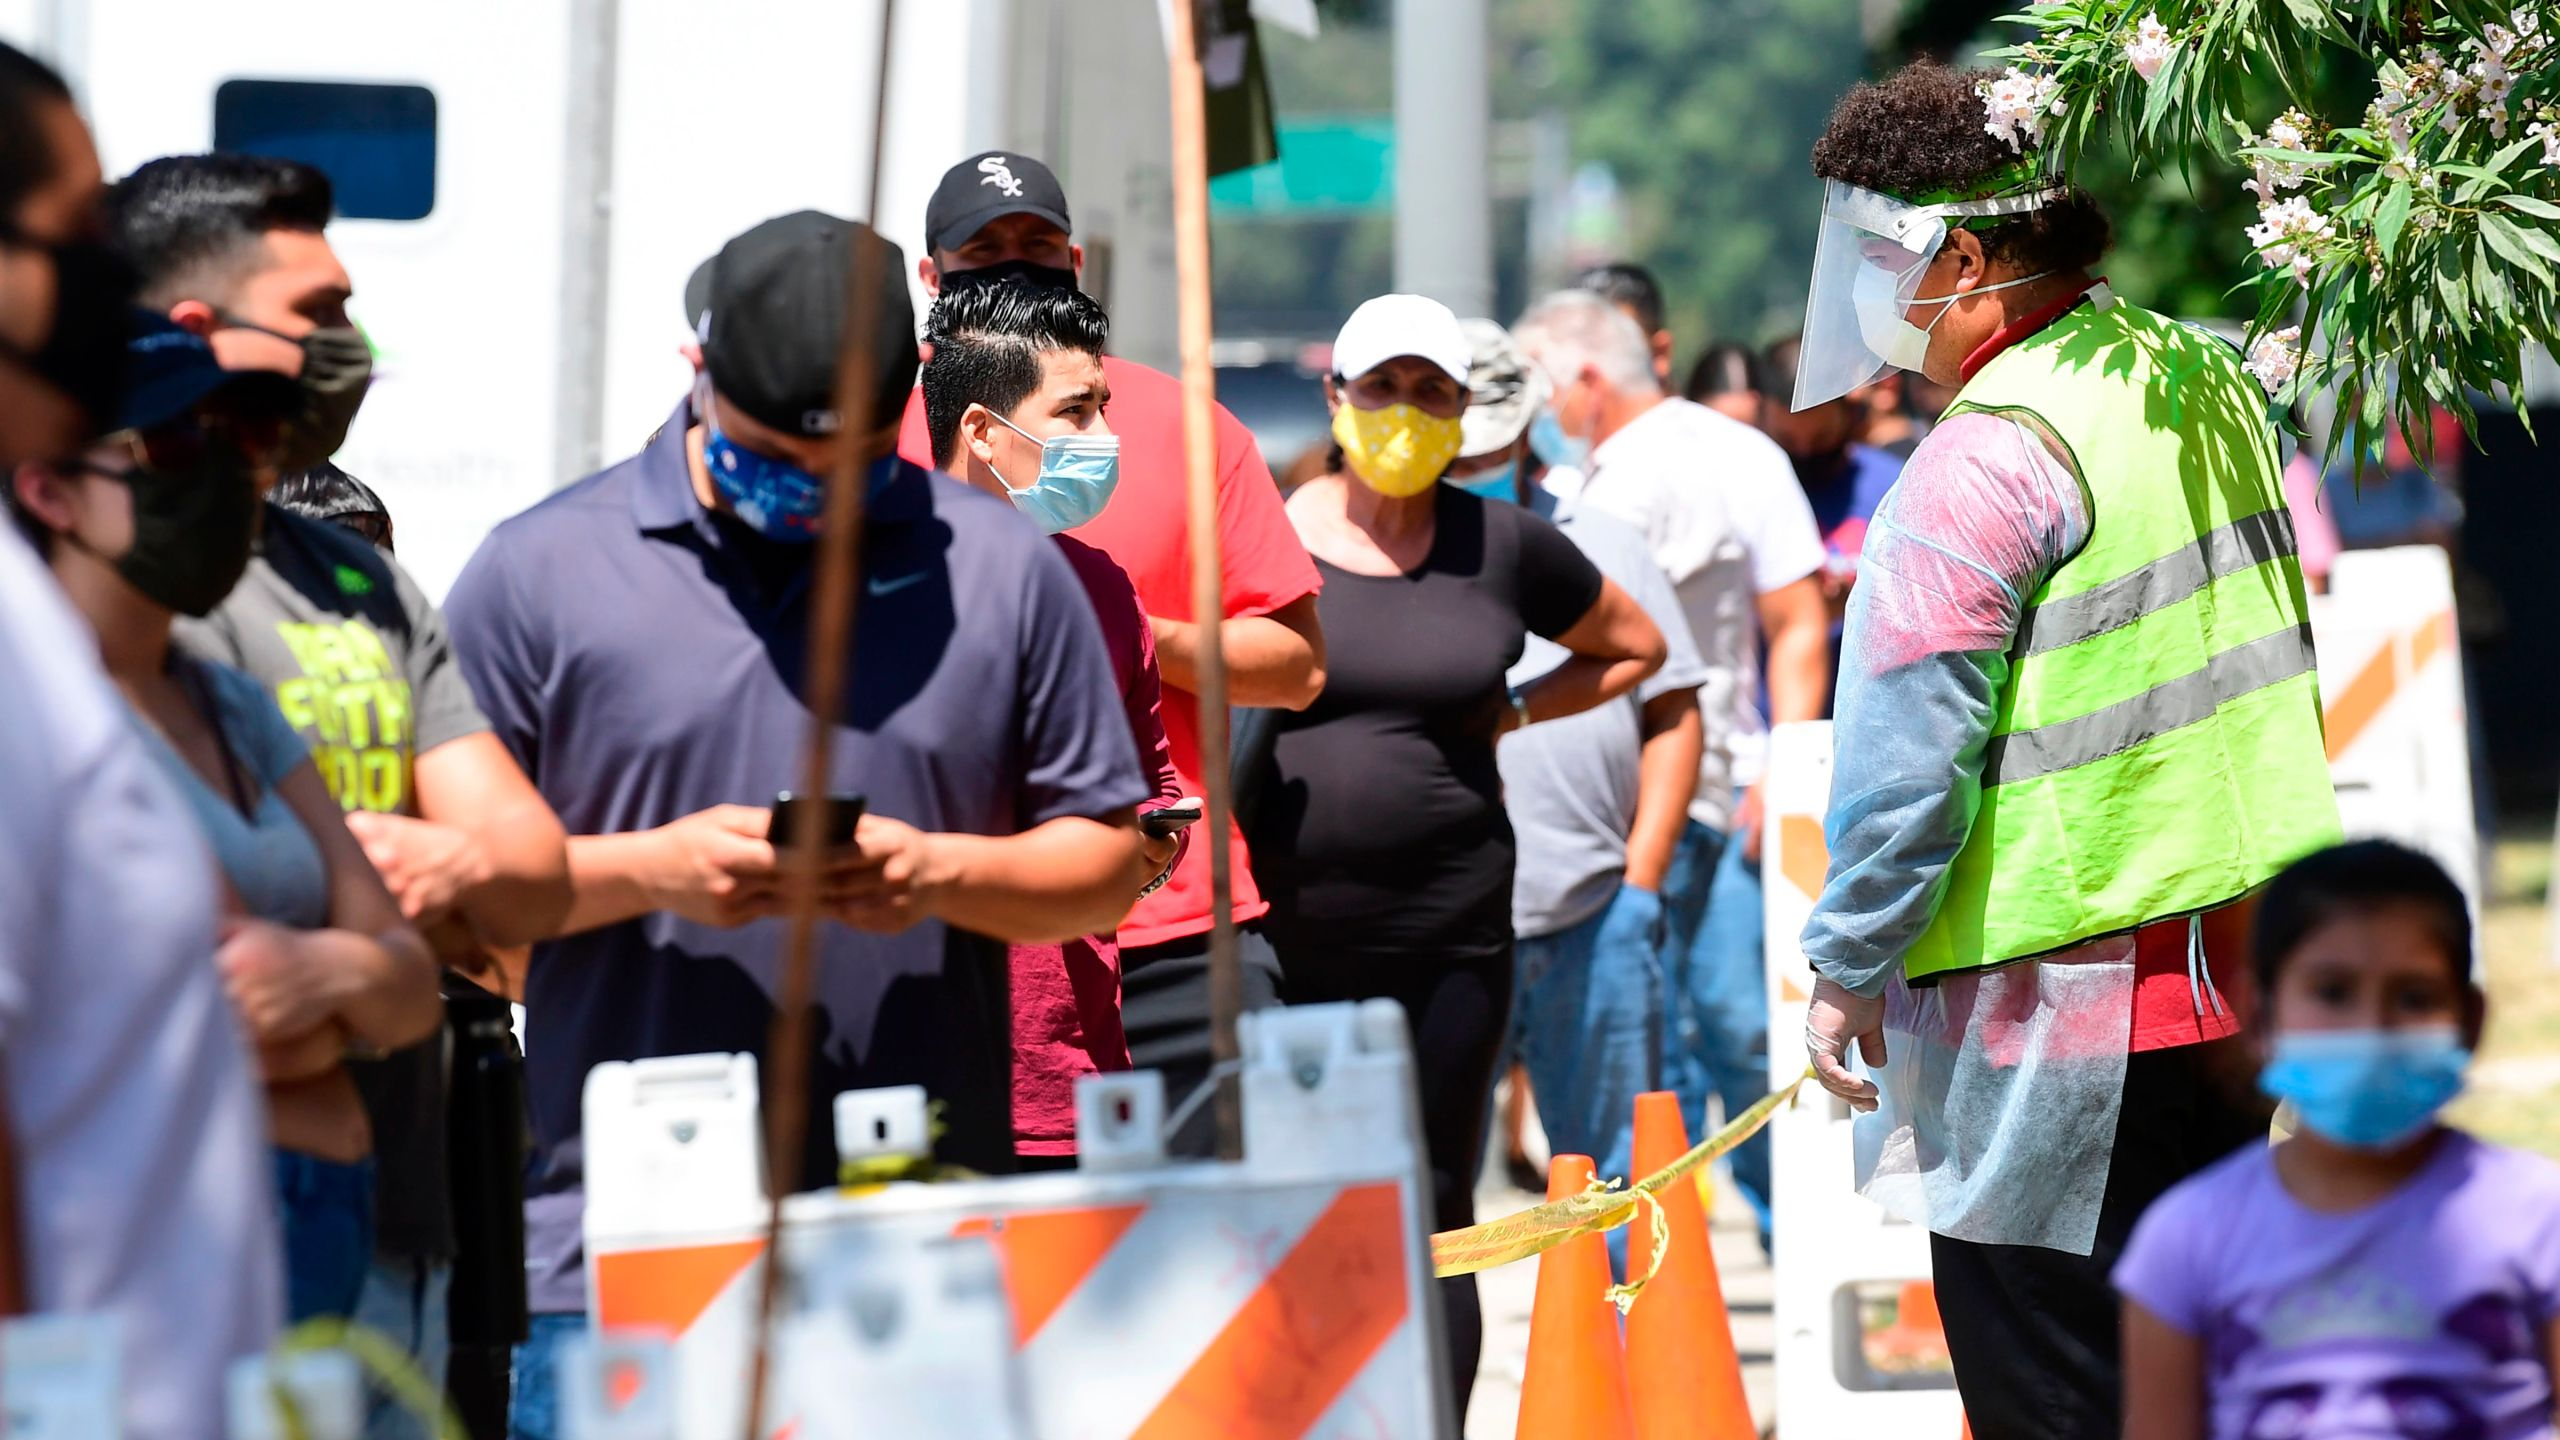 A volunteer wearing personal protective equipment speaks with people waiting in line at a walk-in coronavirus test site in Los Angeles on July 10, 2020. (Frederic J. Brown / AFP / Getty Images)